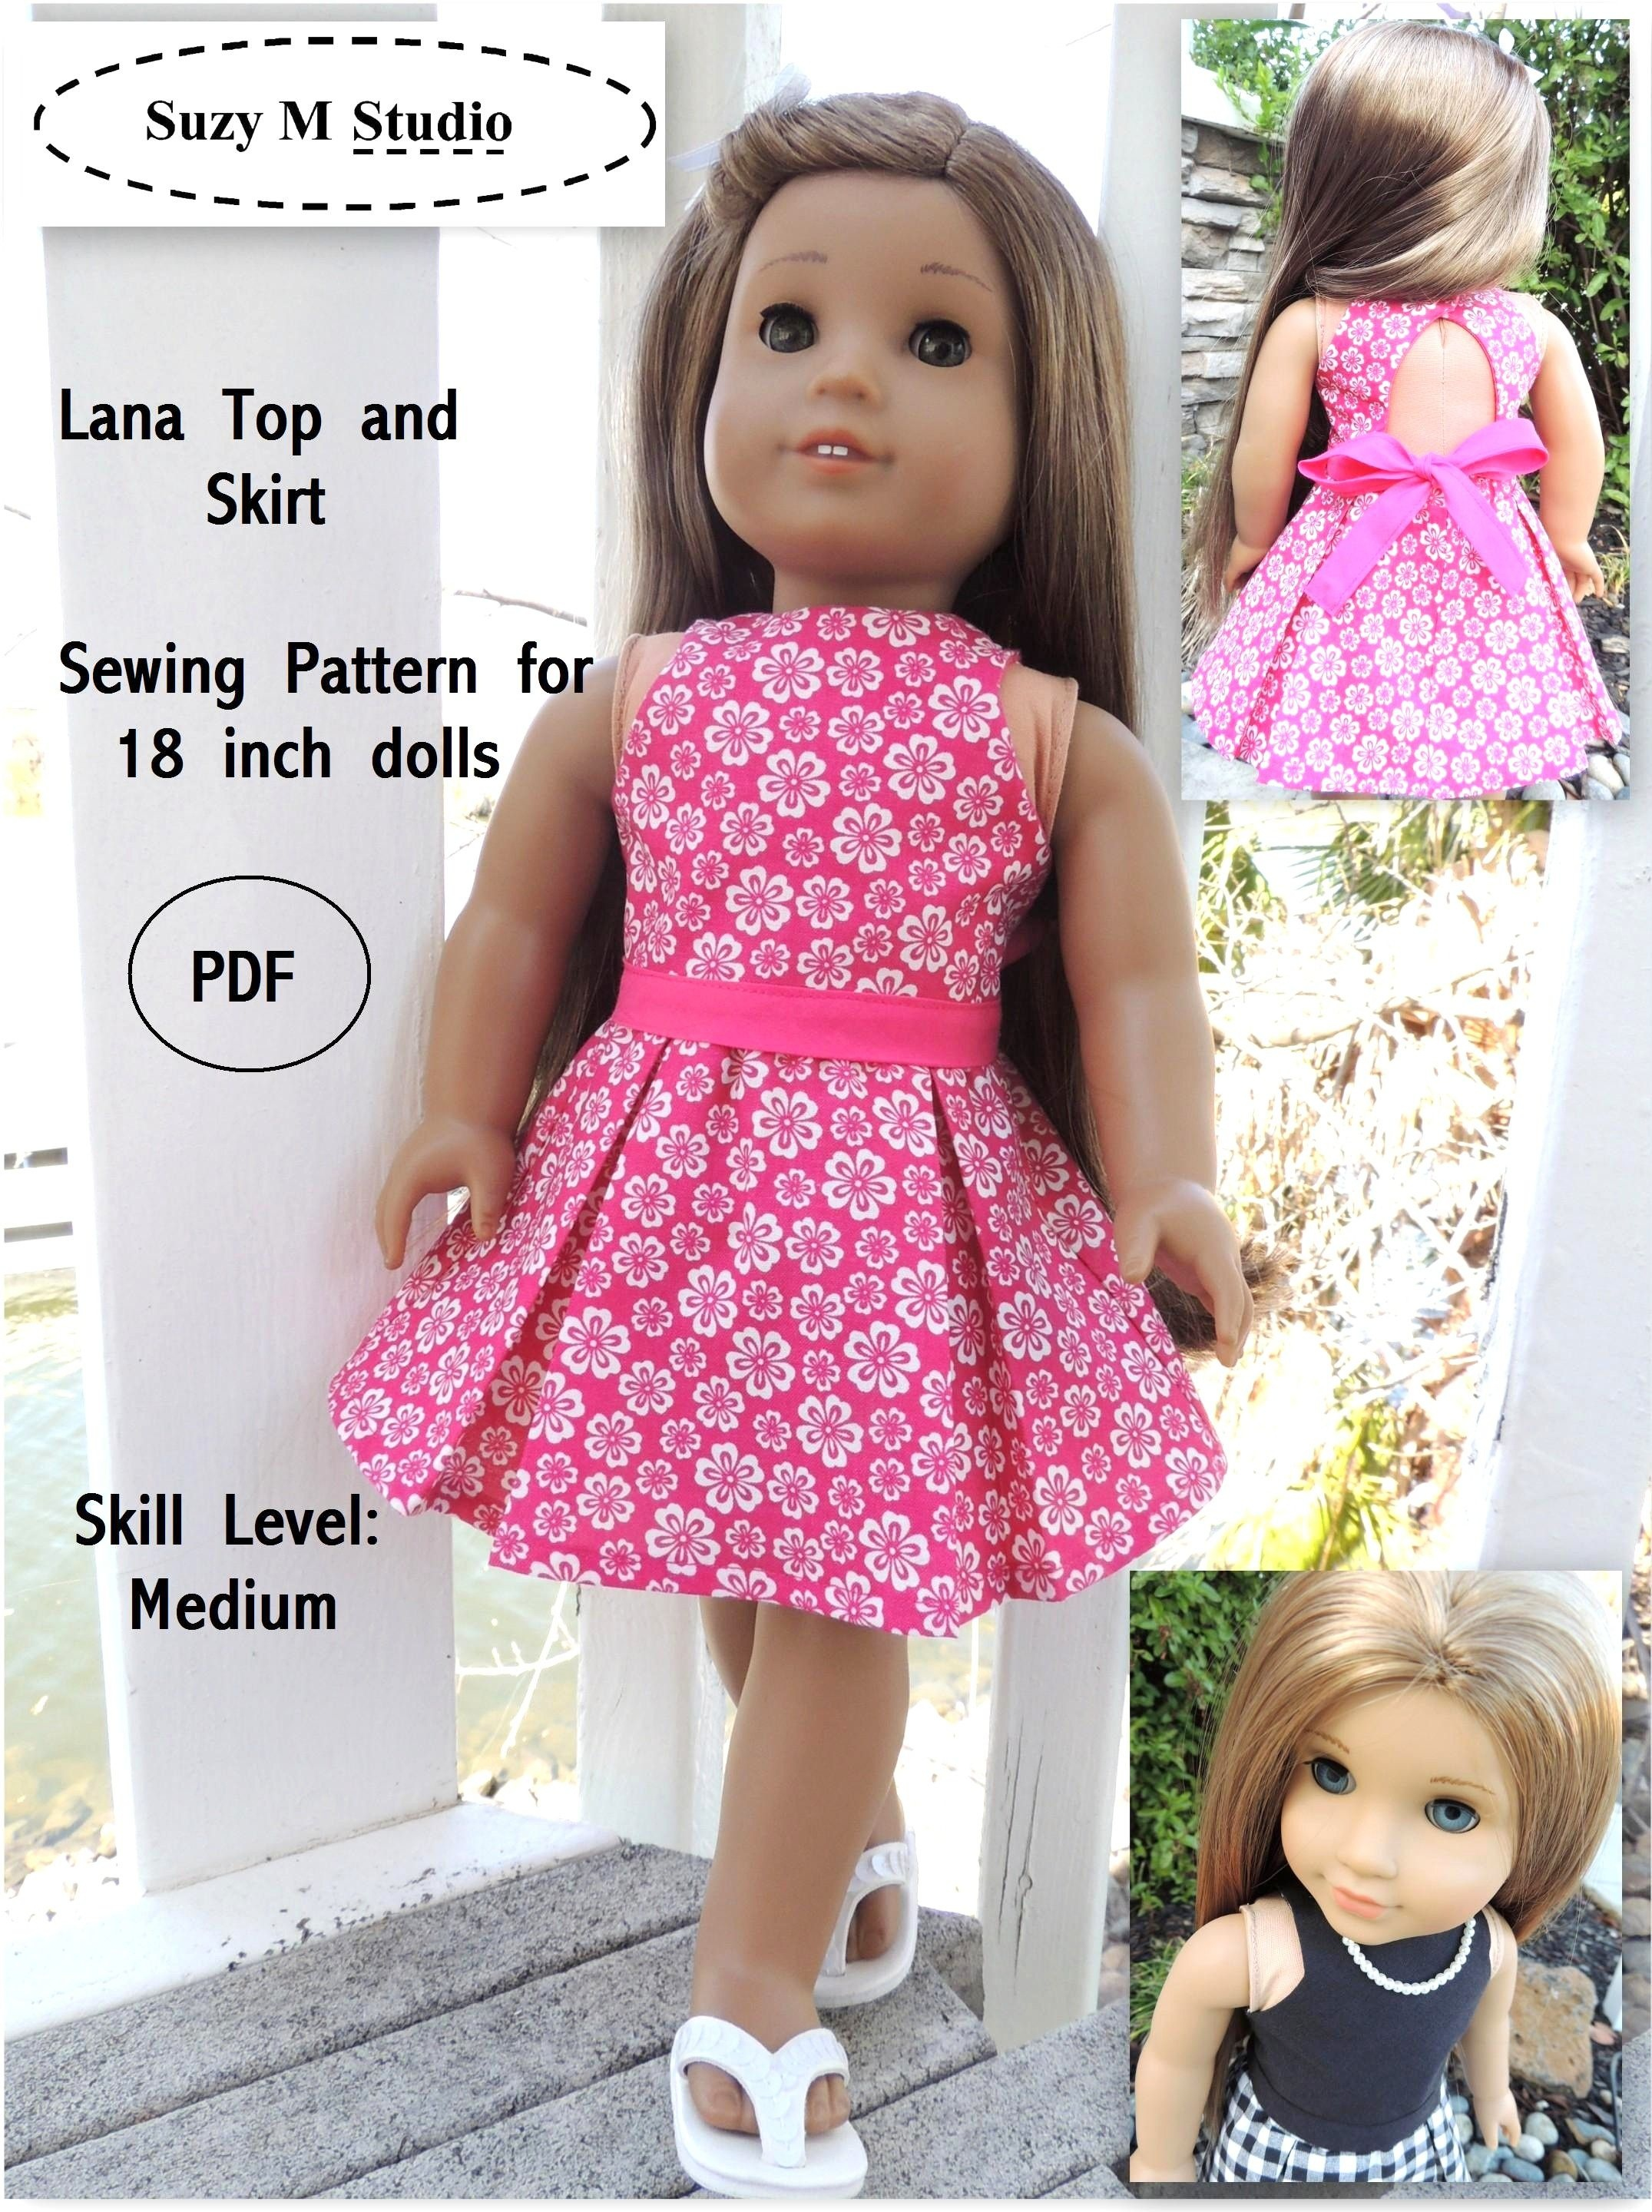 Free Tutorial Pdf | Suzymstudio … | Doll Clothes | Girl … - Free Printable Doll Clothes Patterns For 18 Inch Dolls